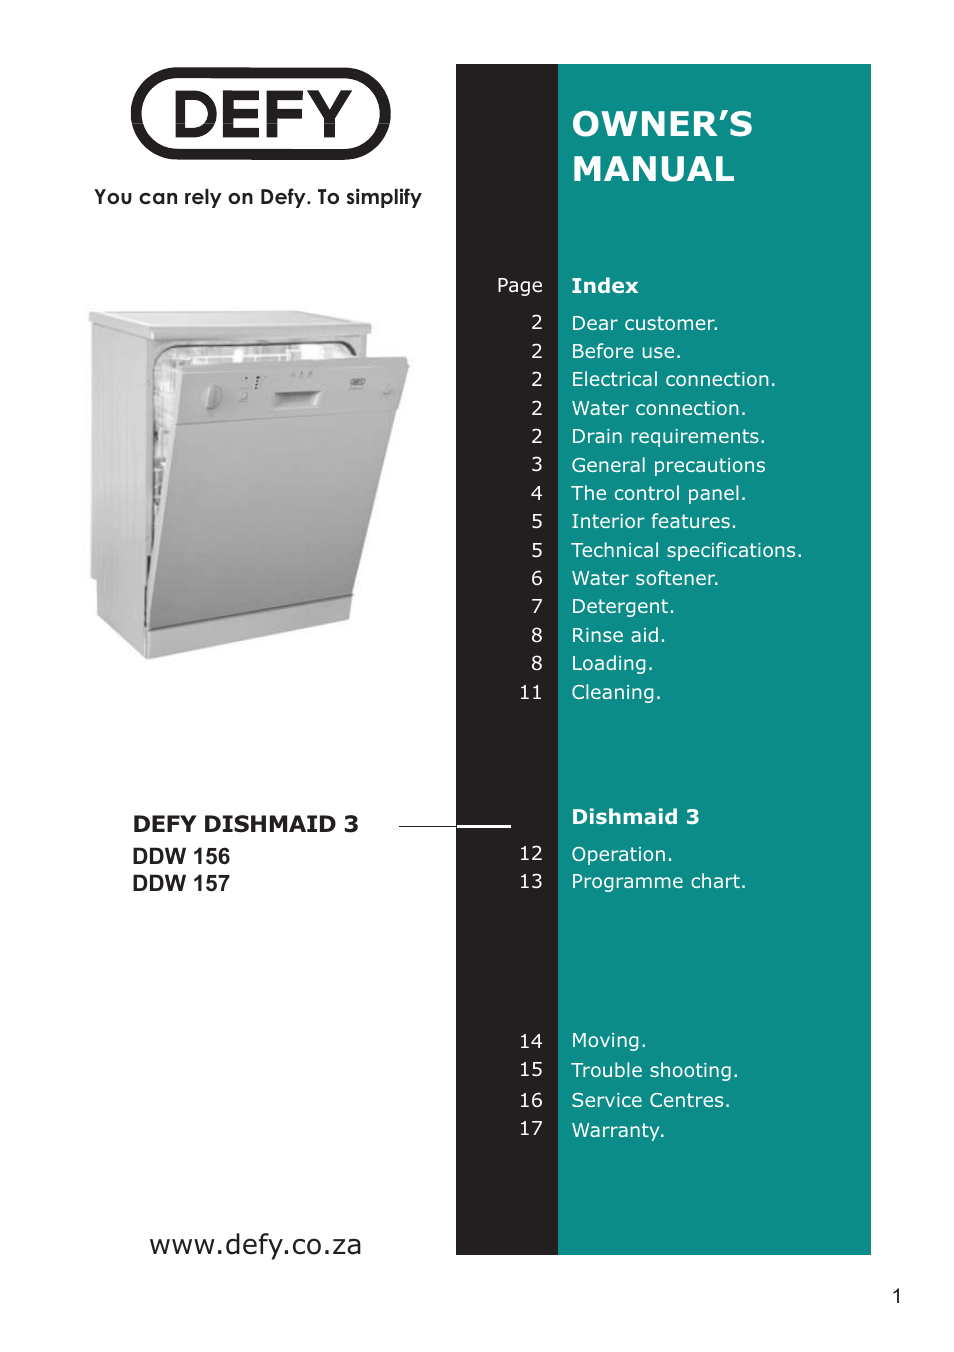 Defy Appliances DDW 157 User Manual  18 pages  Also for DDW 156